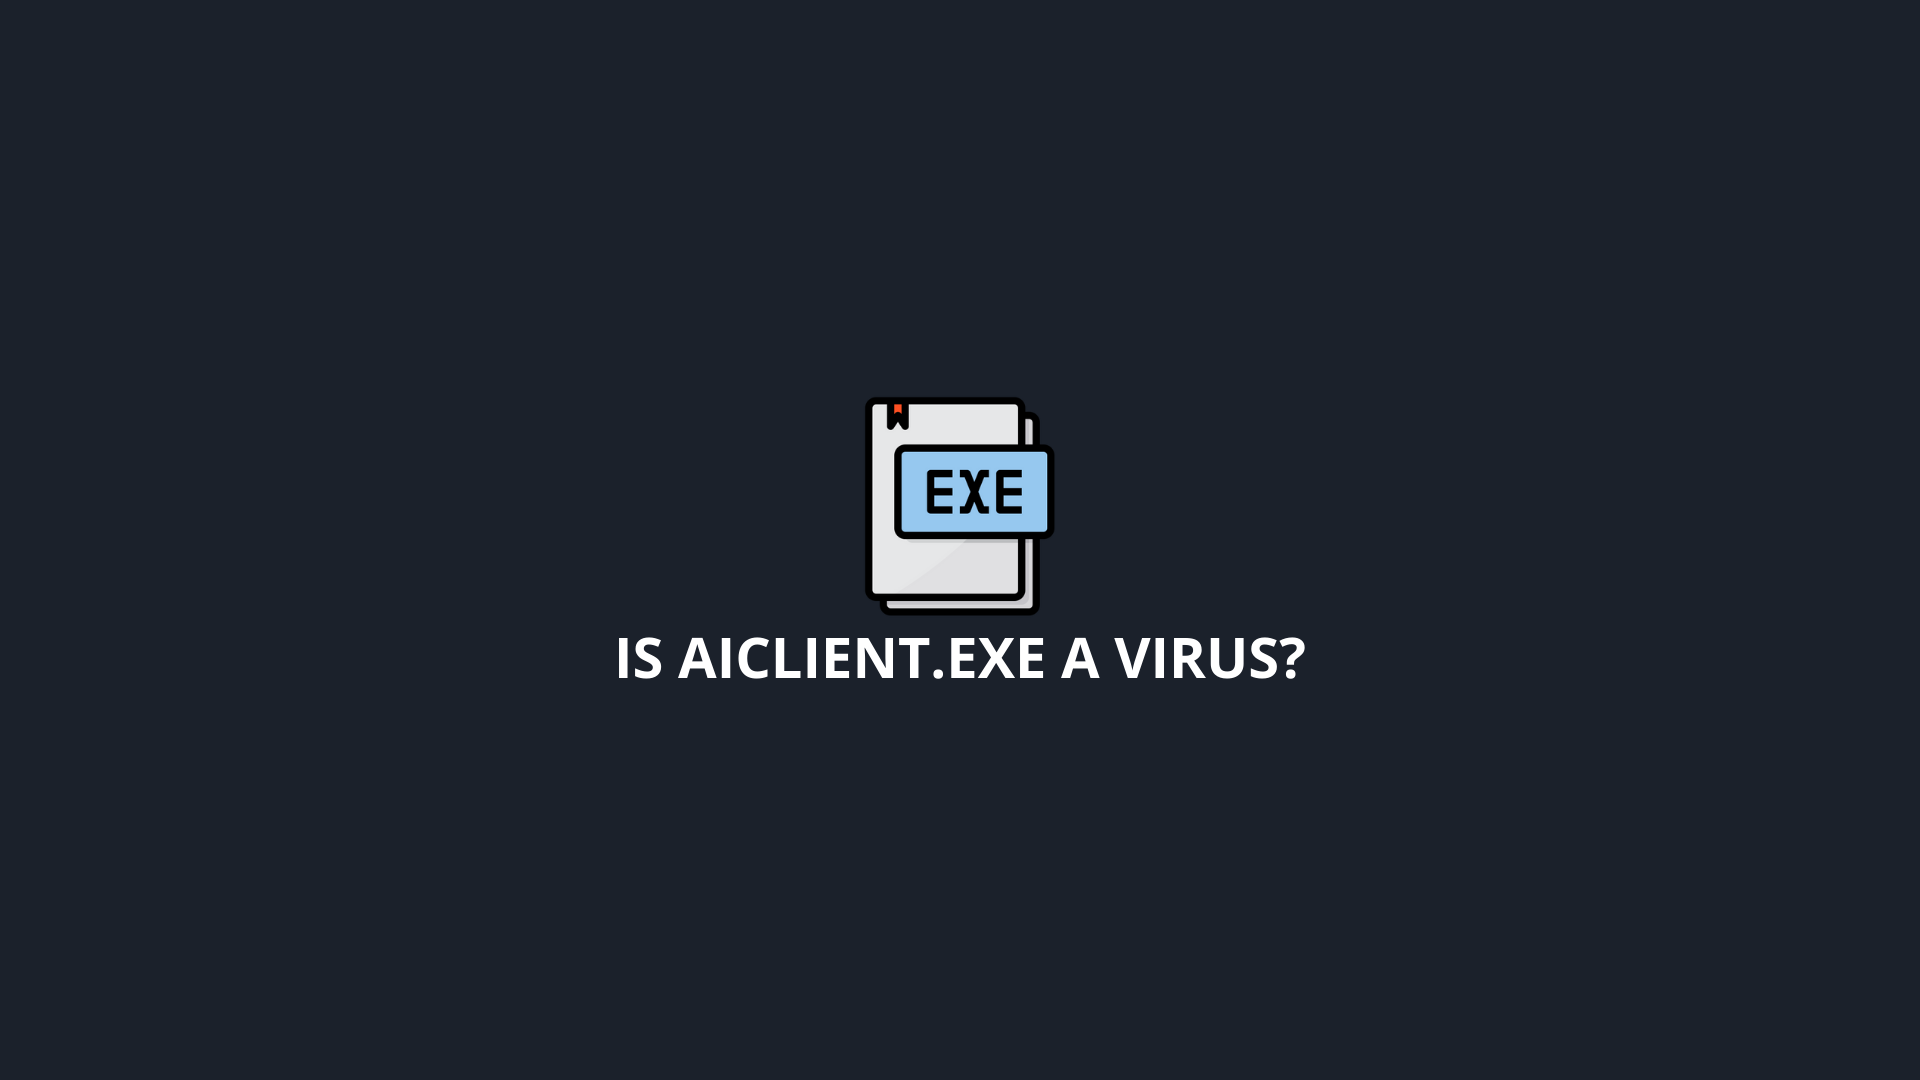 aiclient.exe